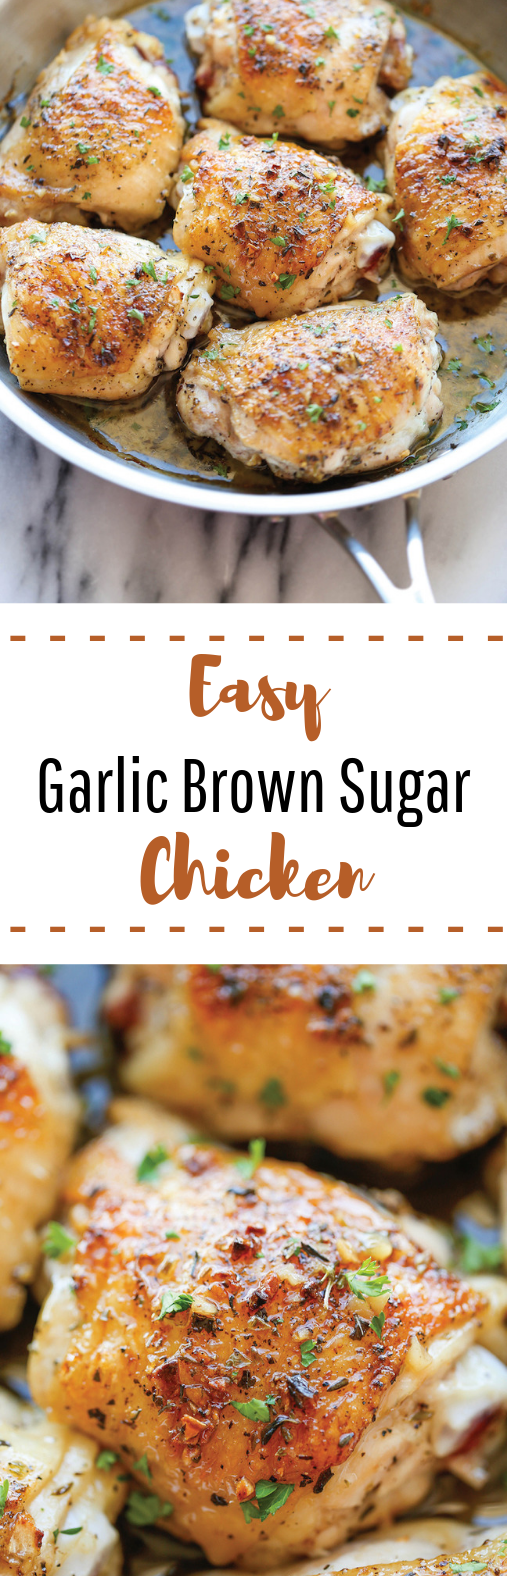 Garlic Brown Sugar Chicken #lowcarb #healthy